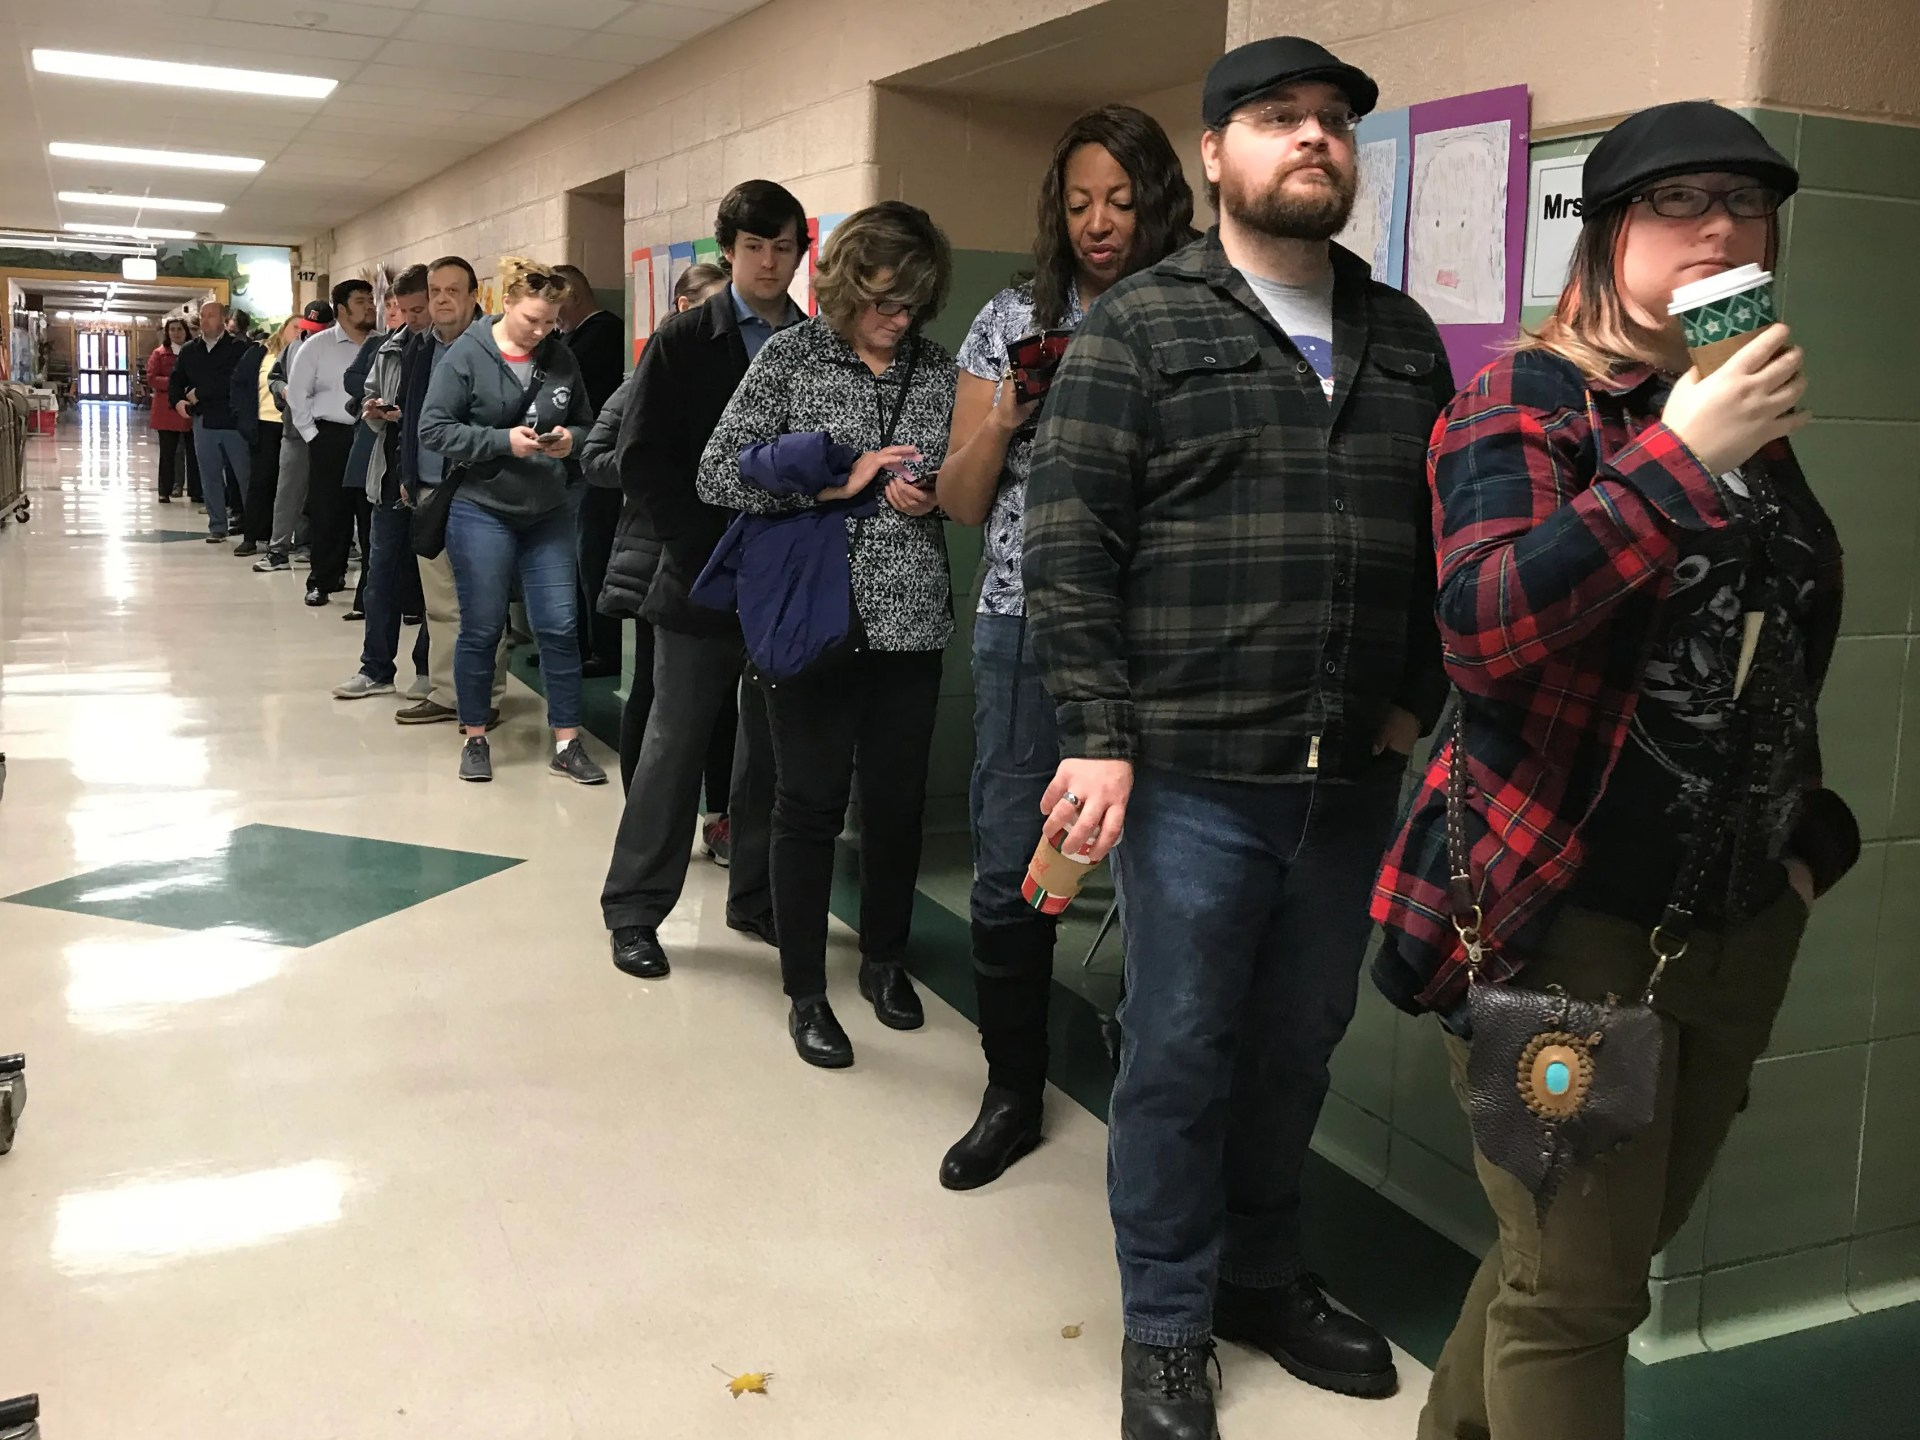 A long line of voters wait in the hallway outside the gymnasium at Monteith Elementary School to cast their ballots in the midterm election Tuesday morning in Grosse Pointe Woods, Michigan.